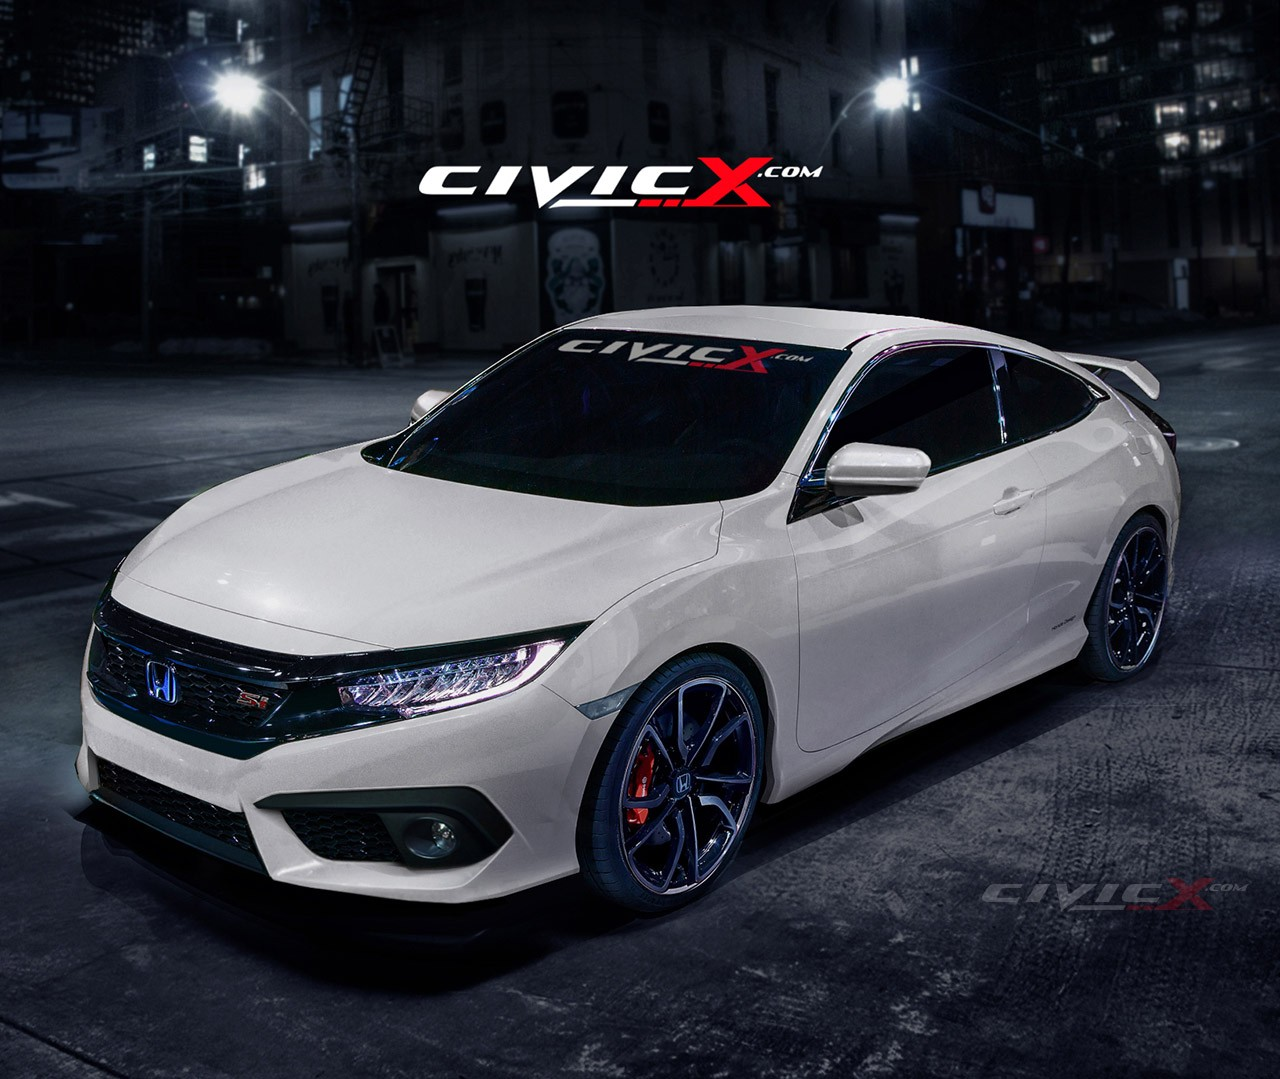 2016 Civic Si Coupe Accurately Rendered Based On Spy Images